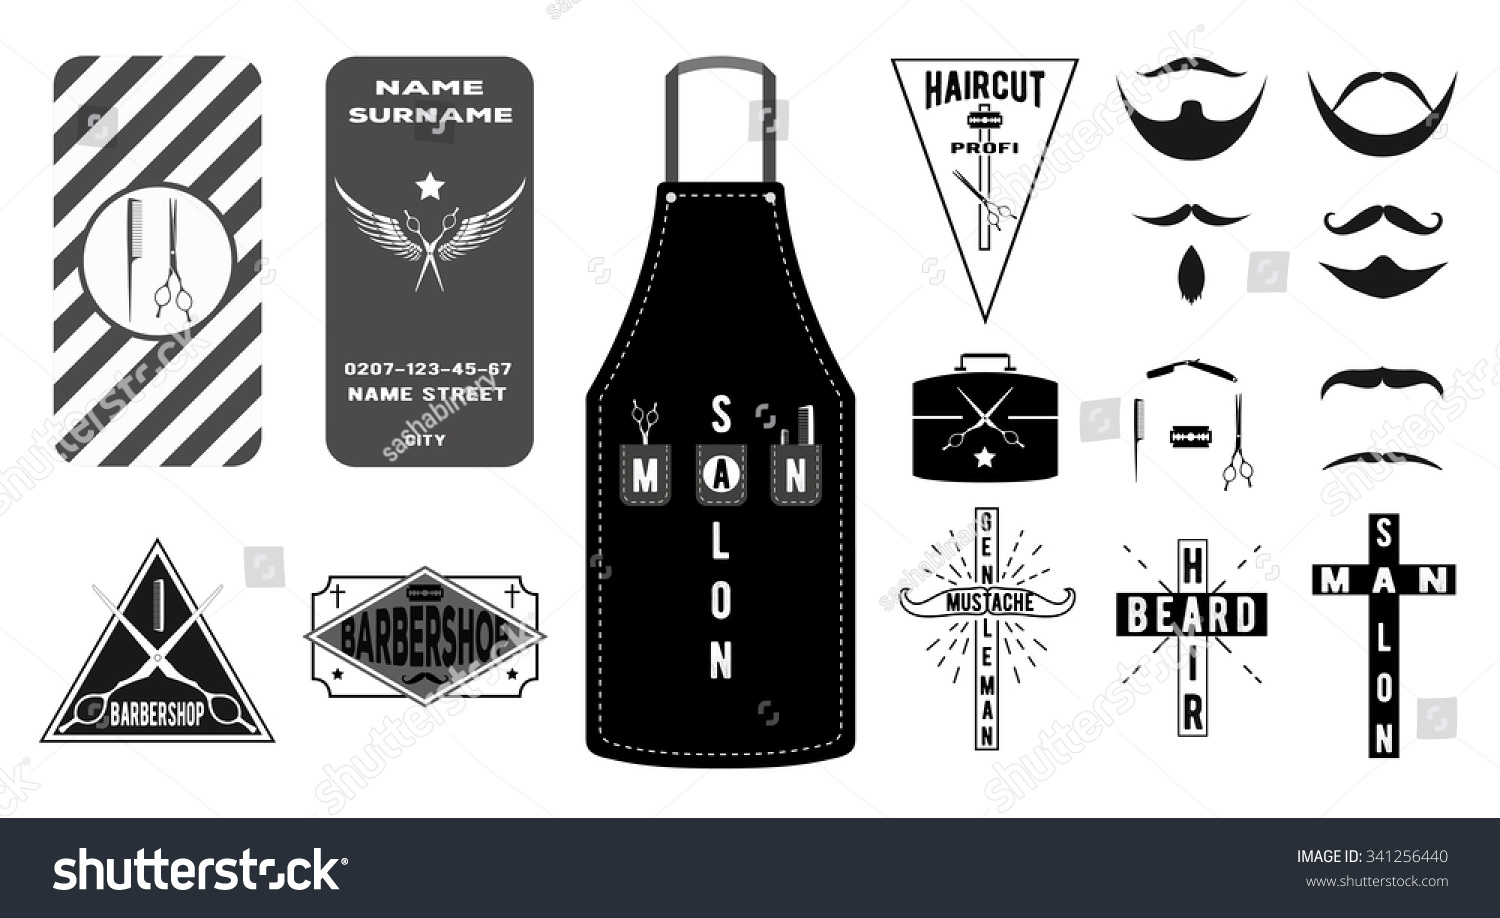 Collection vintage barber shop emblems labels stock vector collection of vintage barber shop emblems labels logos and business card in flat style magicingreecefo Image collections